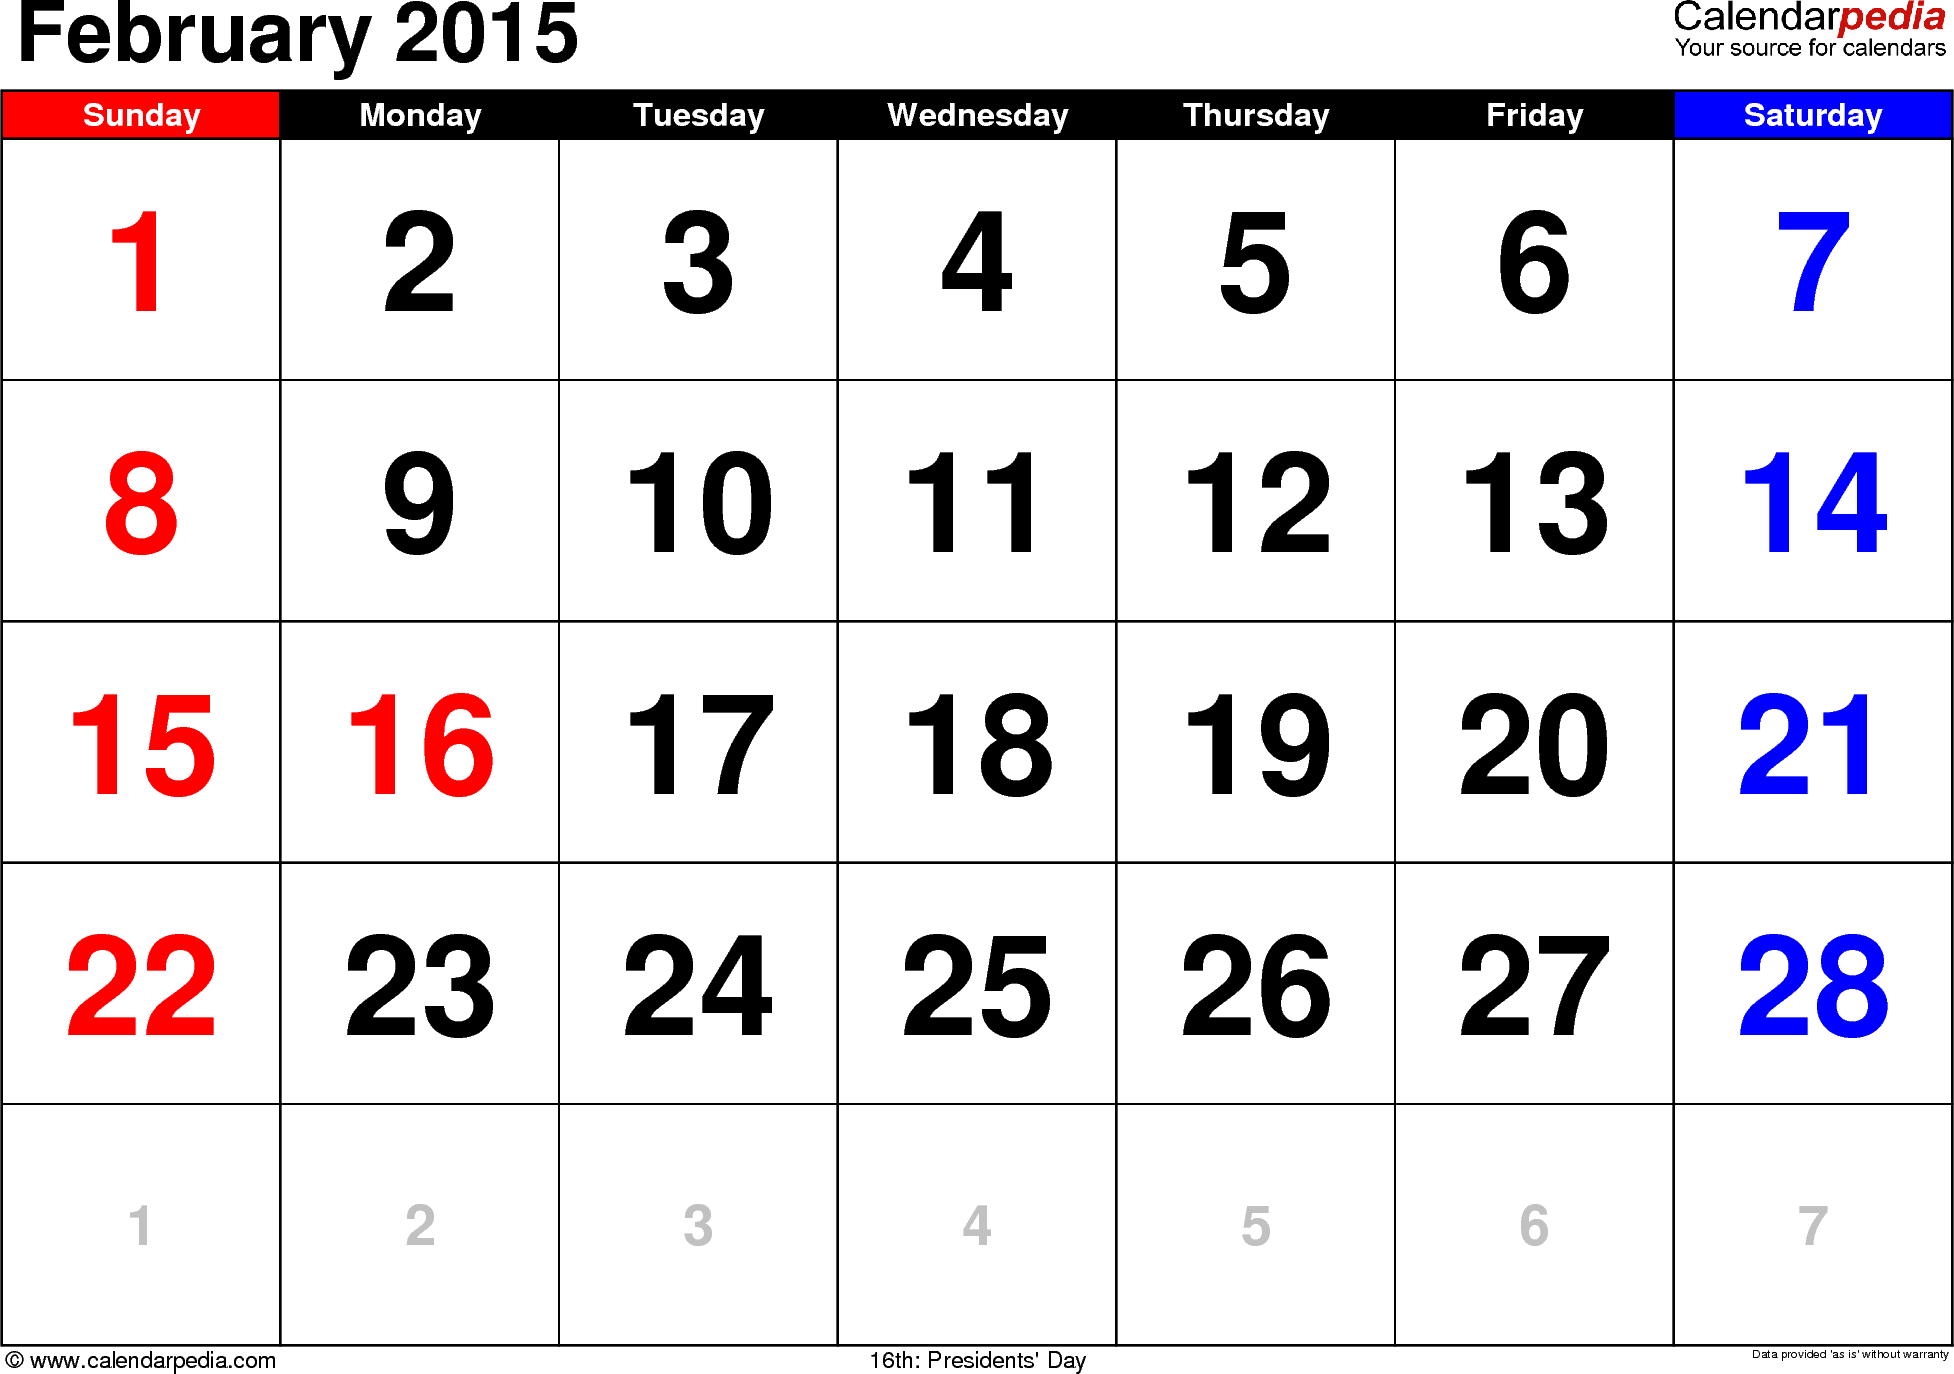 February 2015 calendar, landscape orientation, large numerals, available as printable templates for Word, Excel and PDF